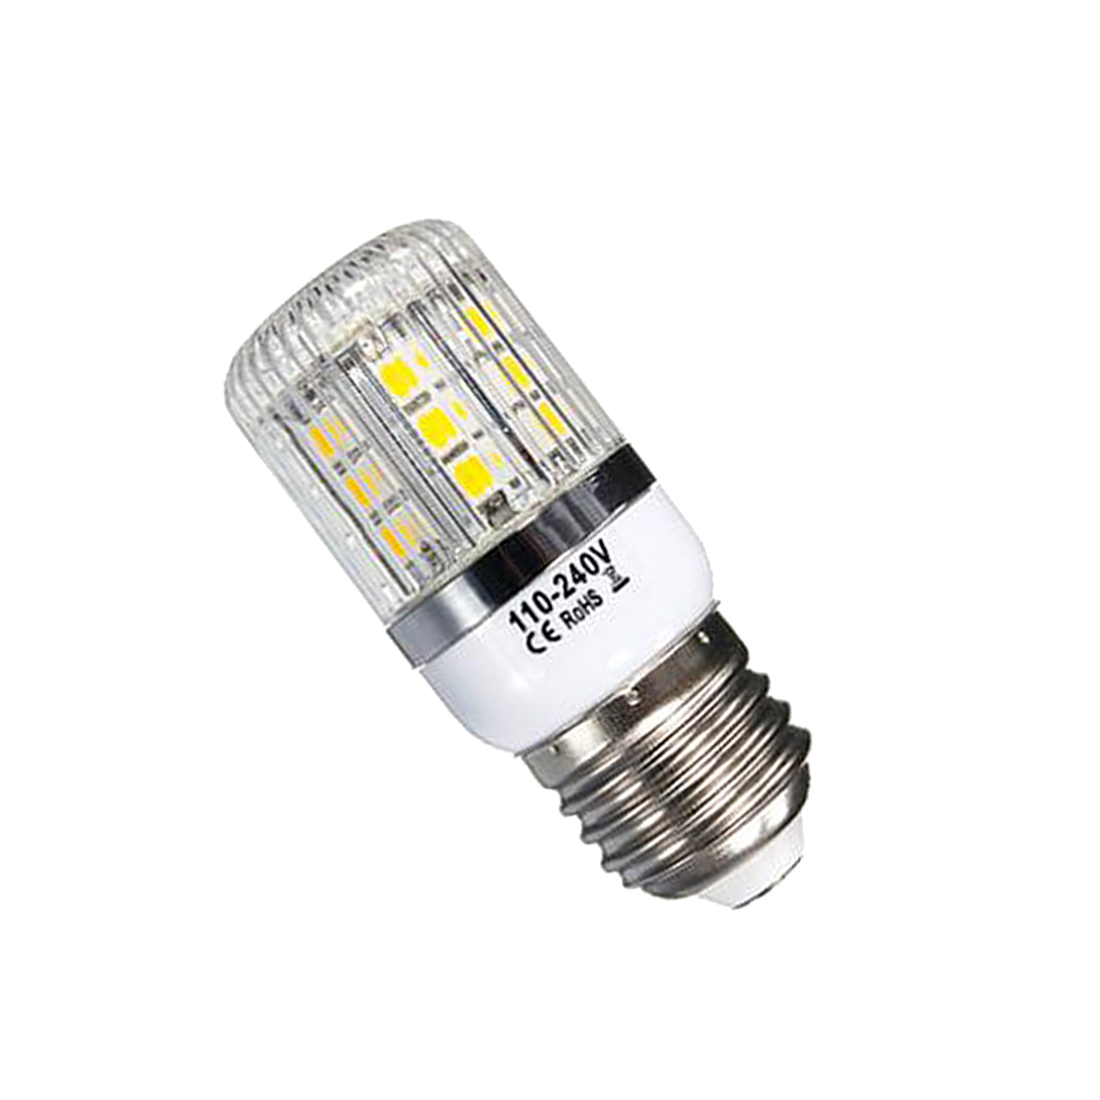 Led light bulb base types led light bulb base types led bulb base types advance power inc Lamp bulb types